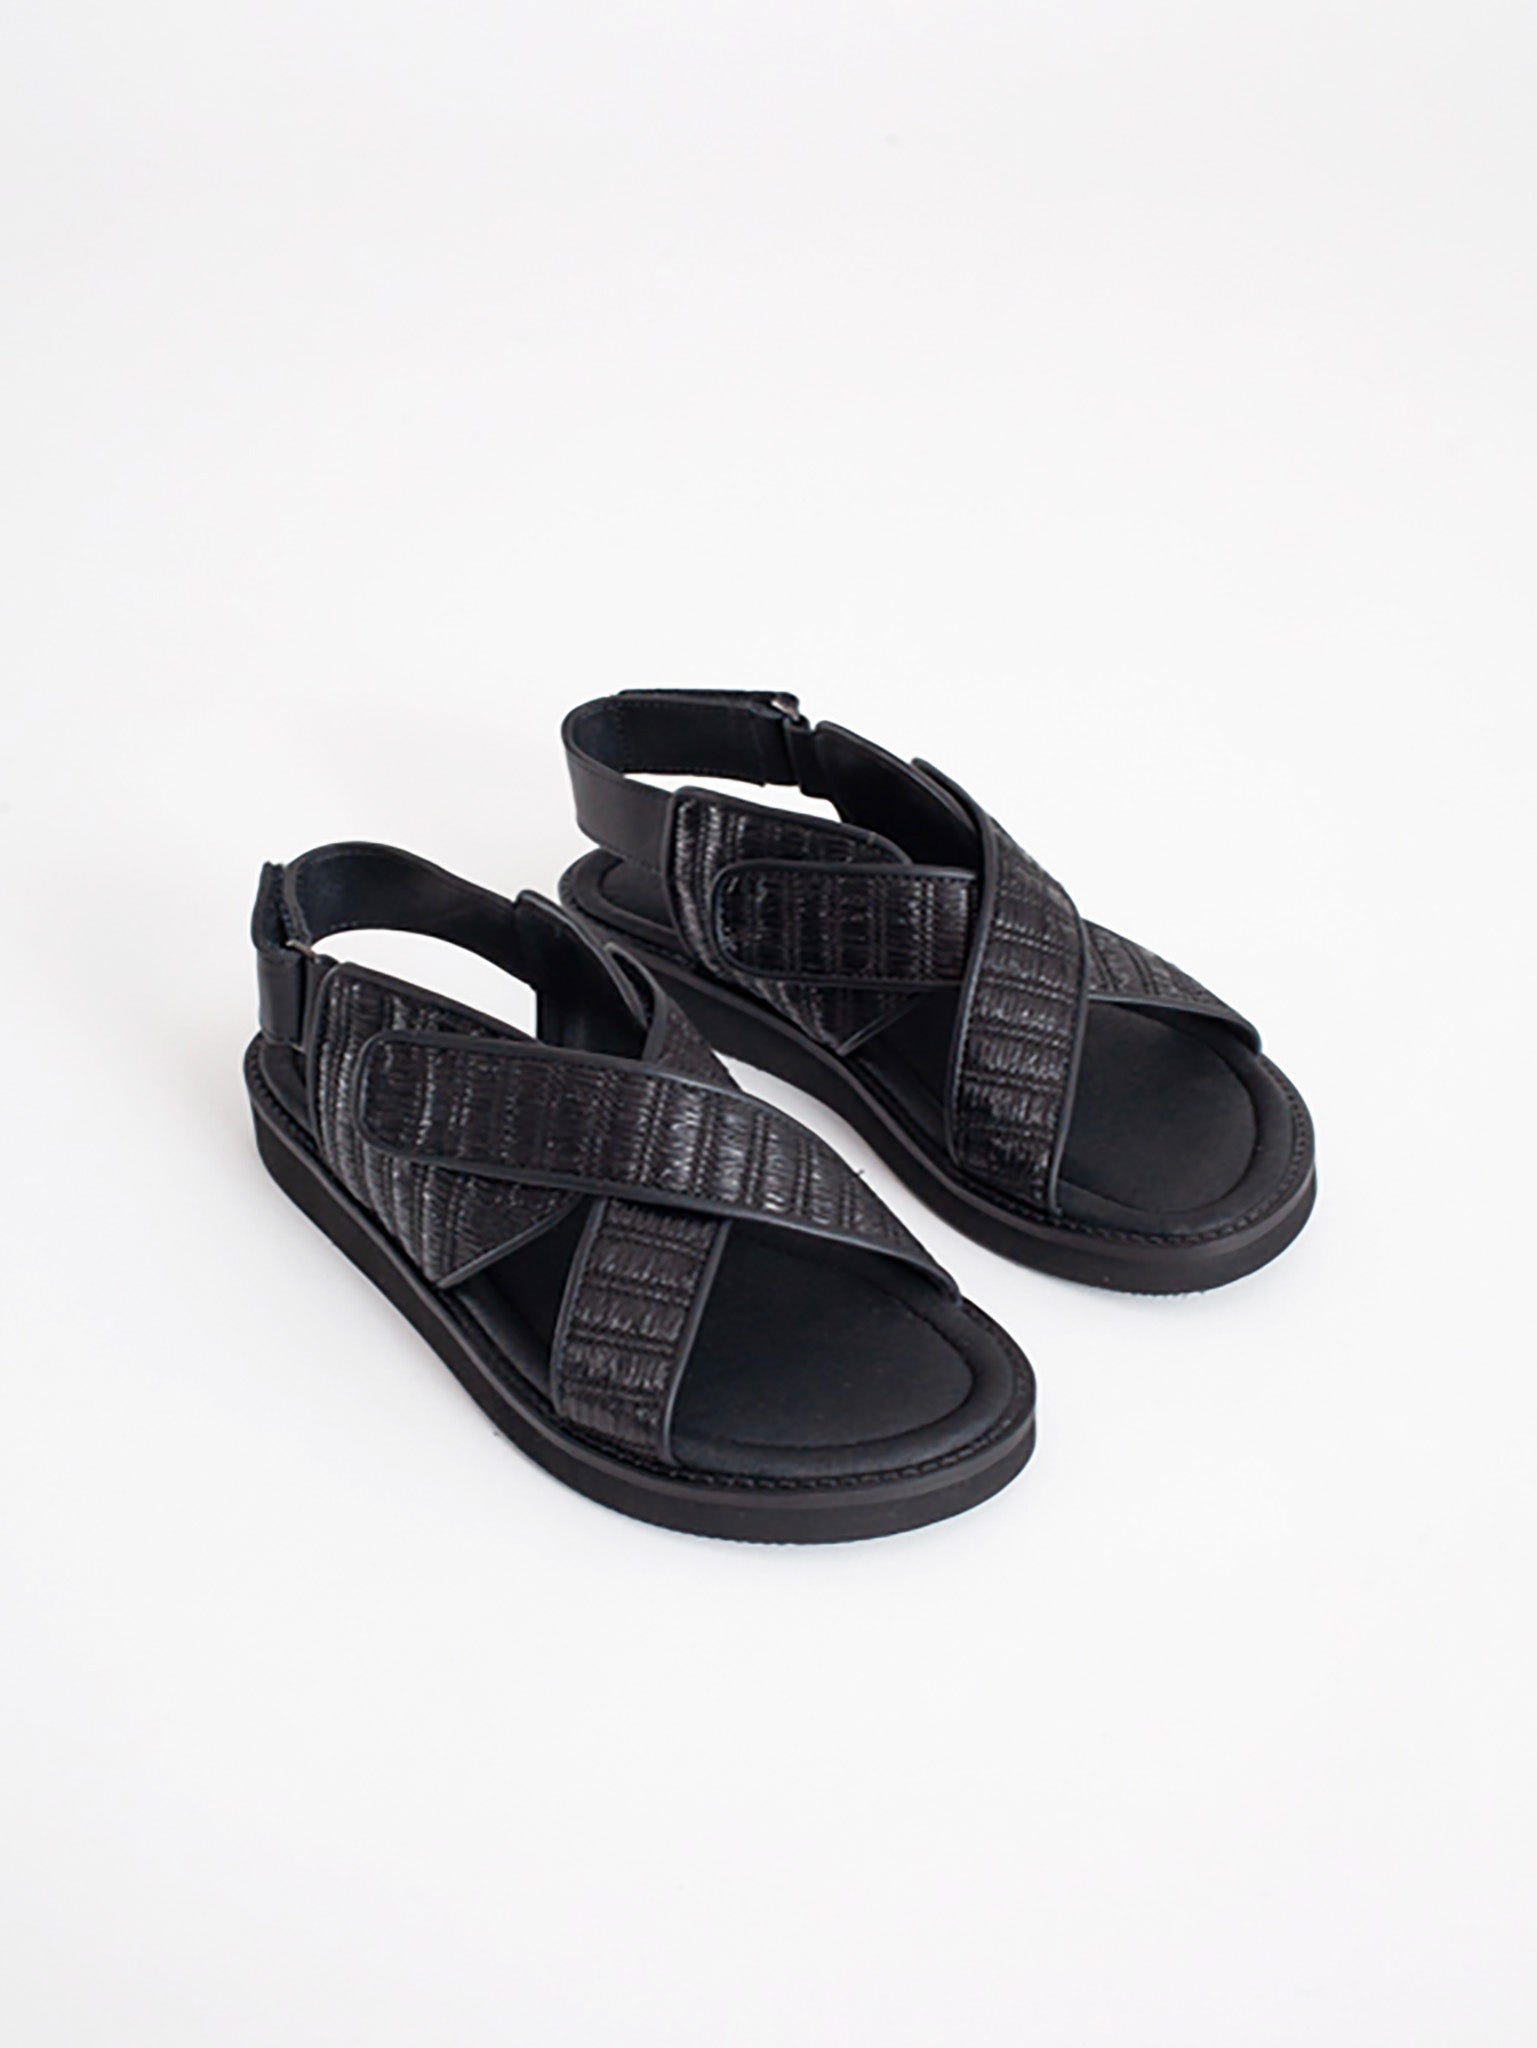 There sandals, black